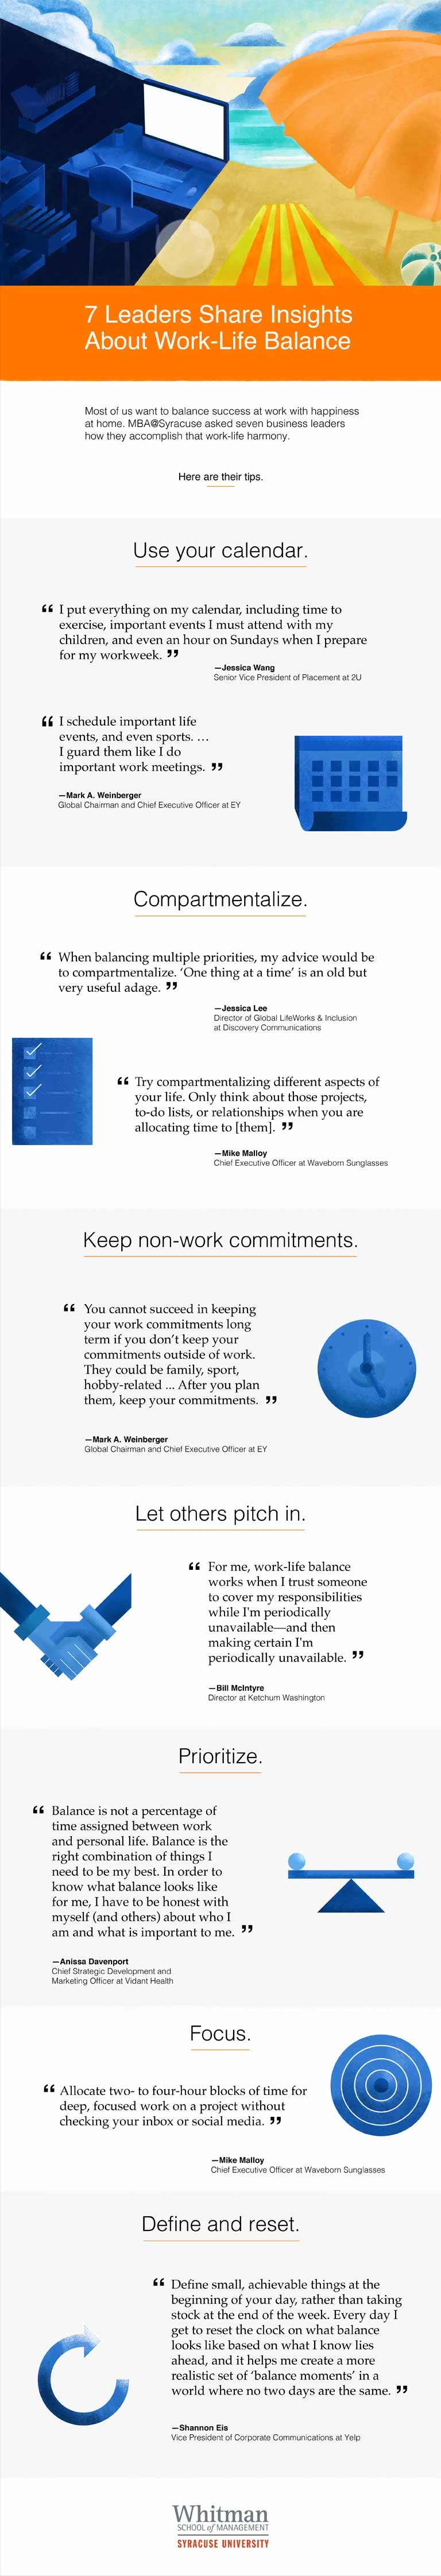 tips-on-work-life-balance-infographic